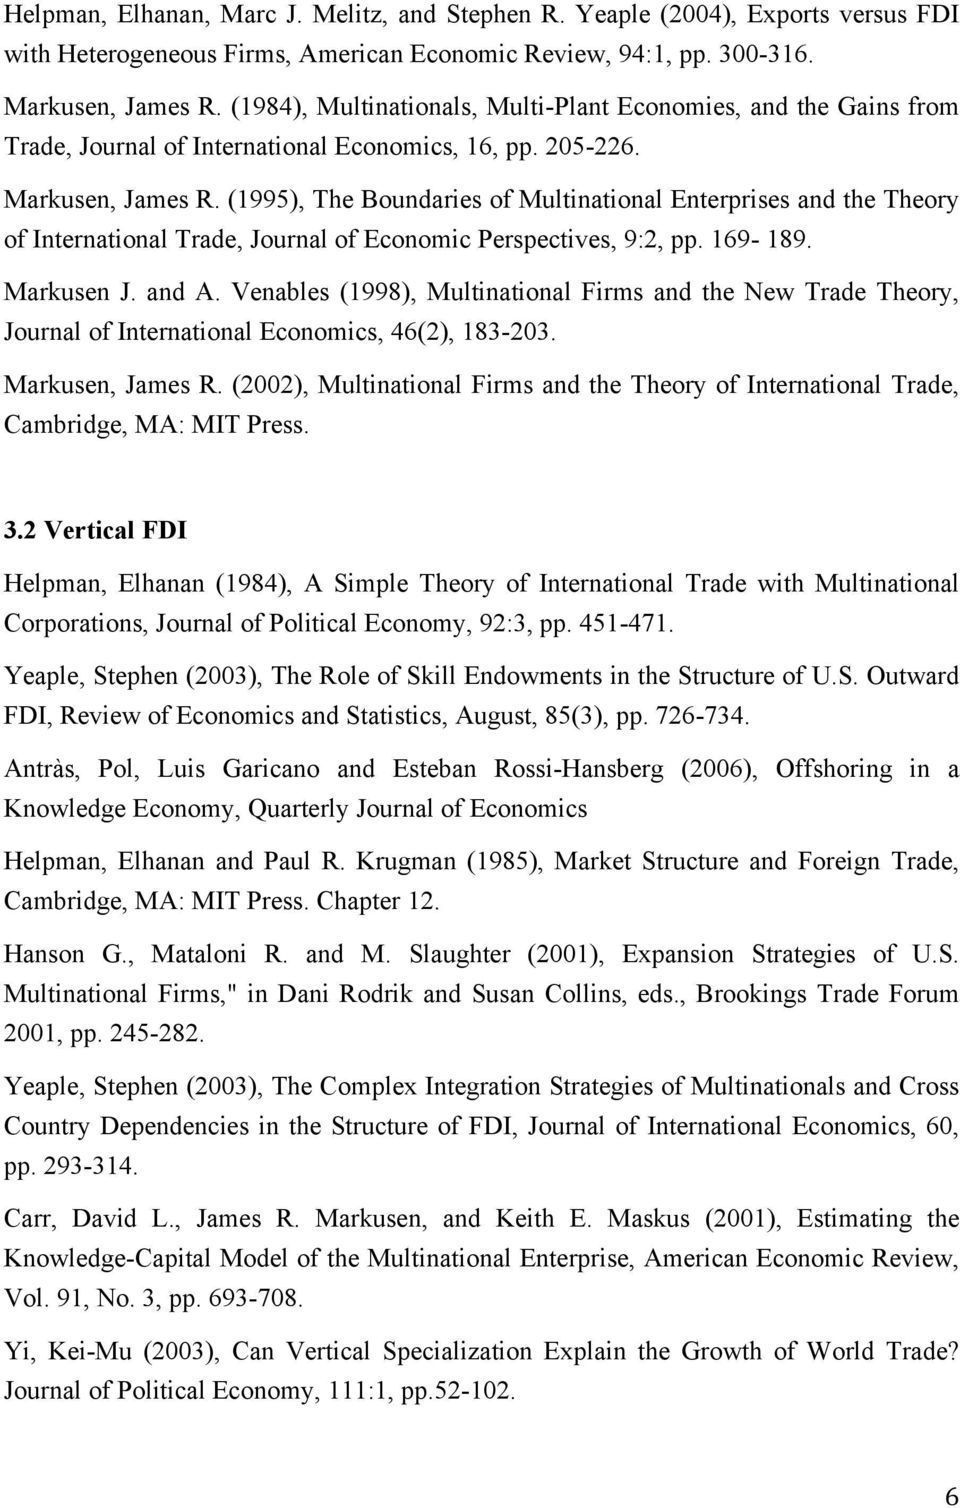 (1995), The Boundaries of Multinational Enterprises and the Theory of International Trade, Journal of Economic Perspectives, 9:2, pp. 169-189. Markusen J. and A.